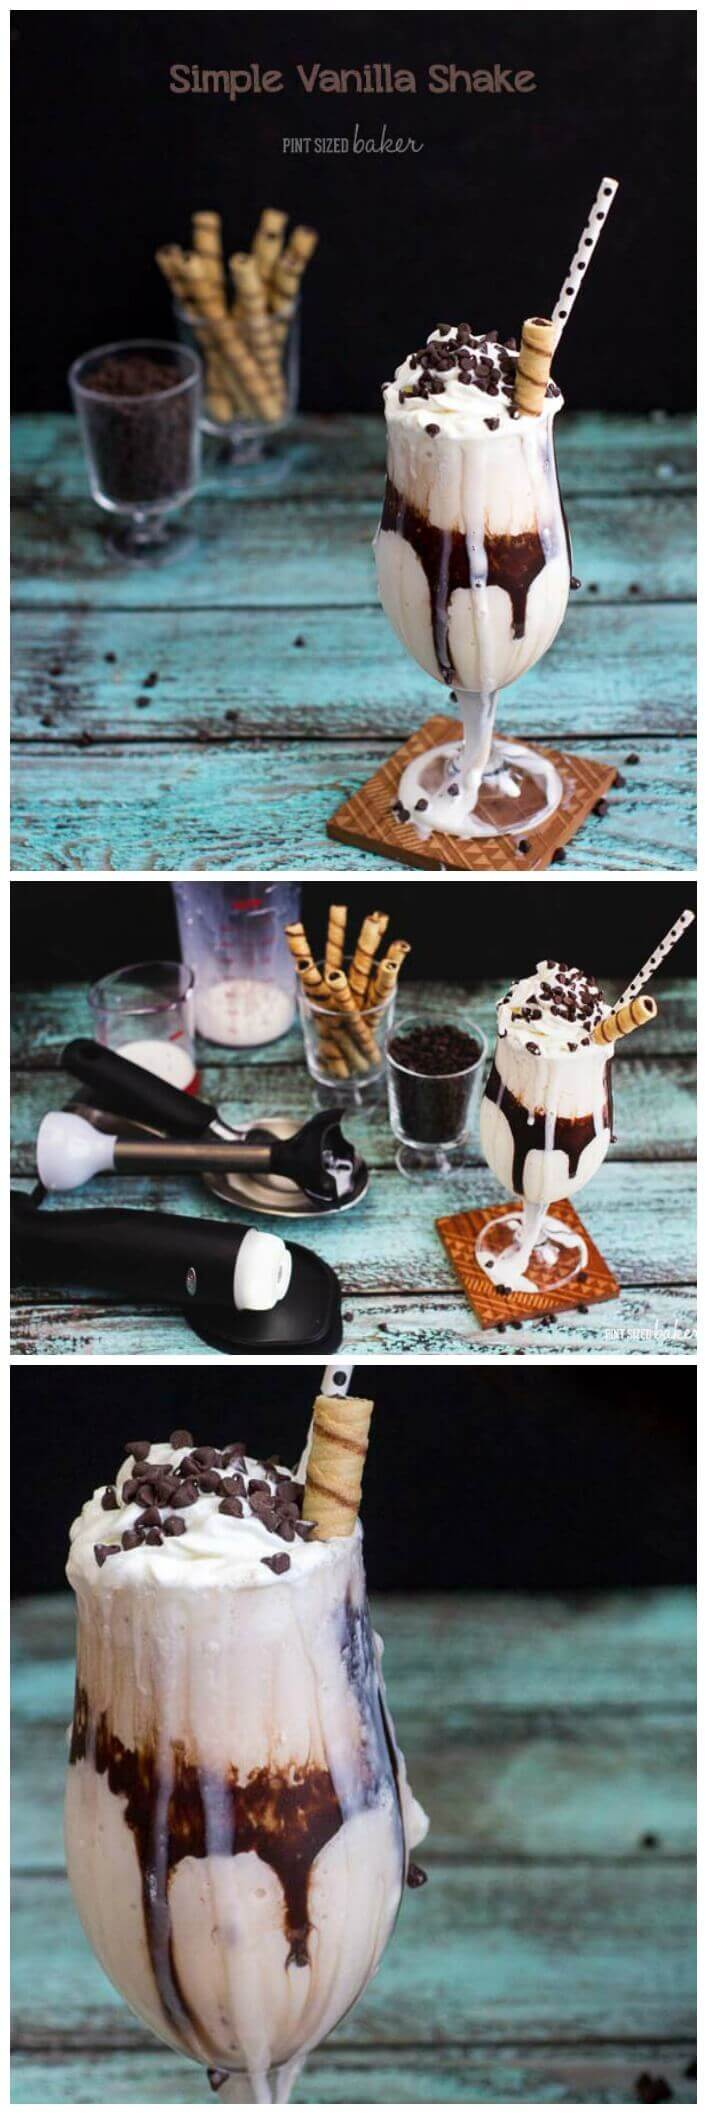 This quick and easy Vanilla Milkshake is the BOMB! No frills, no, crazy ingredients. Just ice cream, milk, and some chocolate for fun!